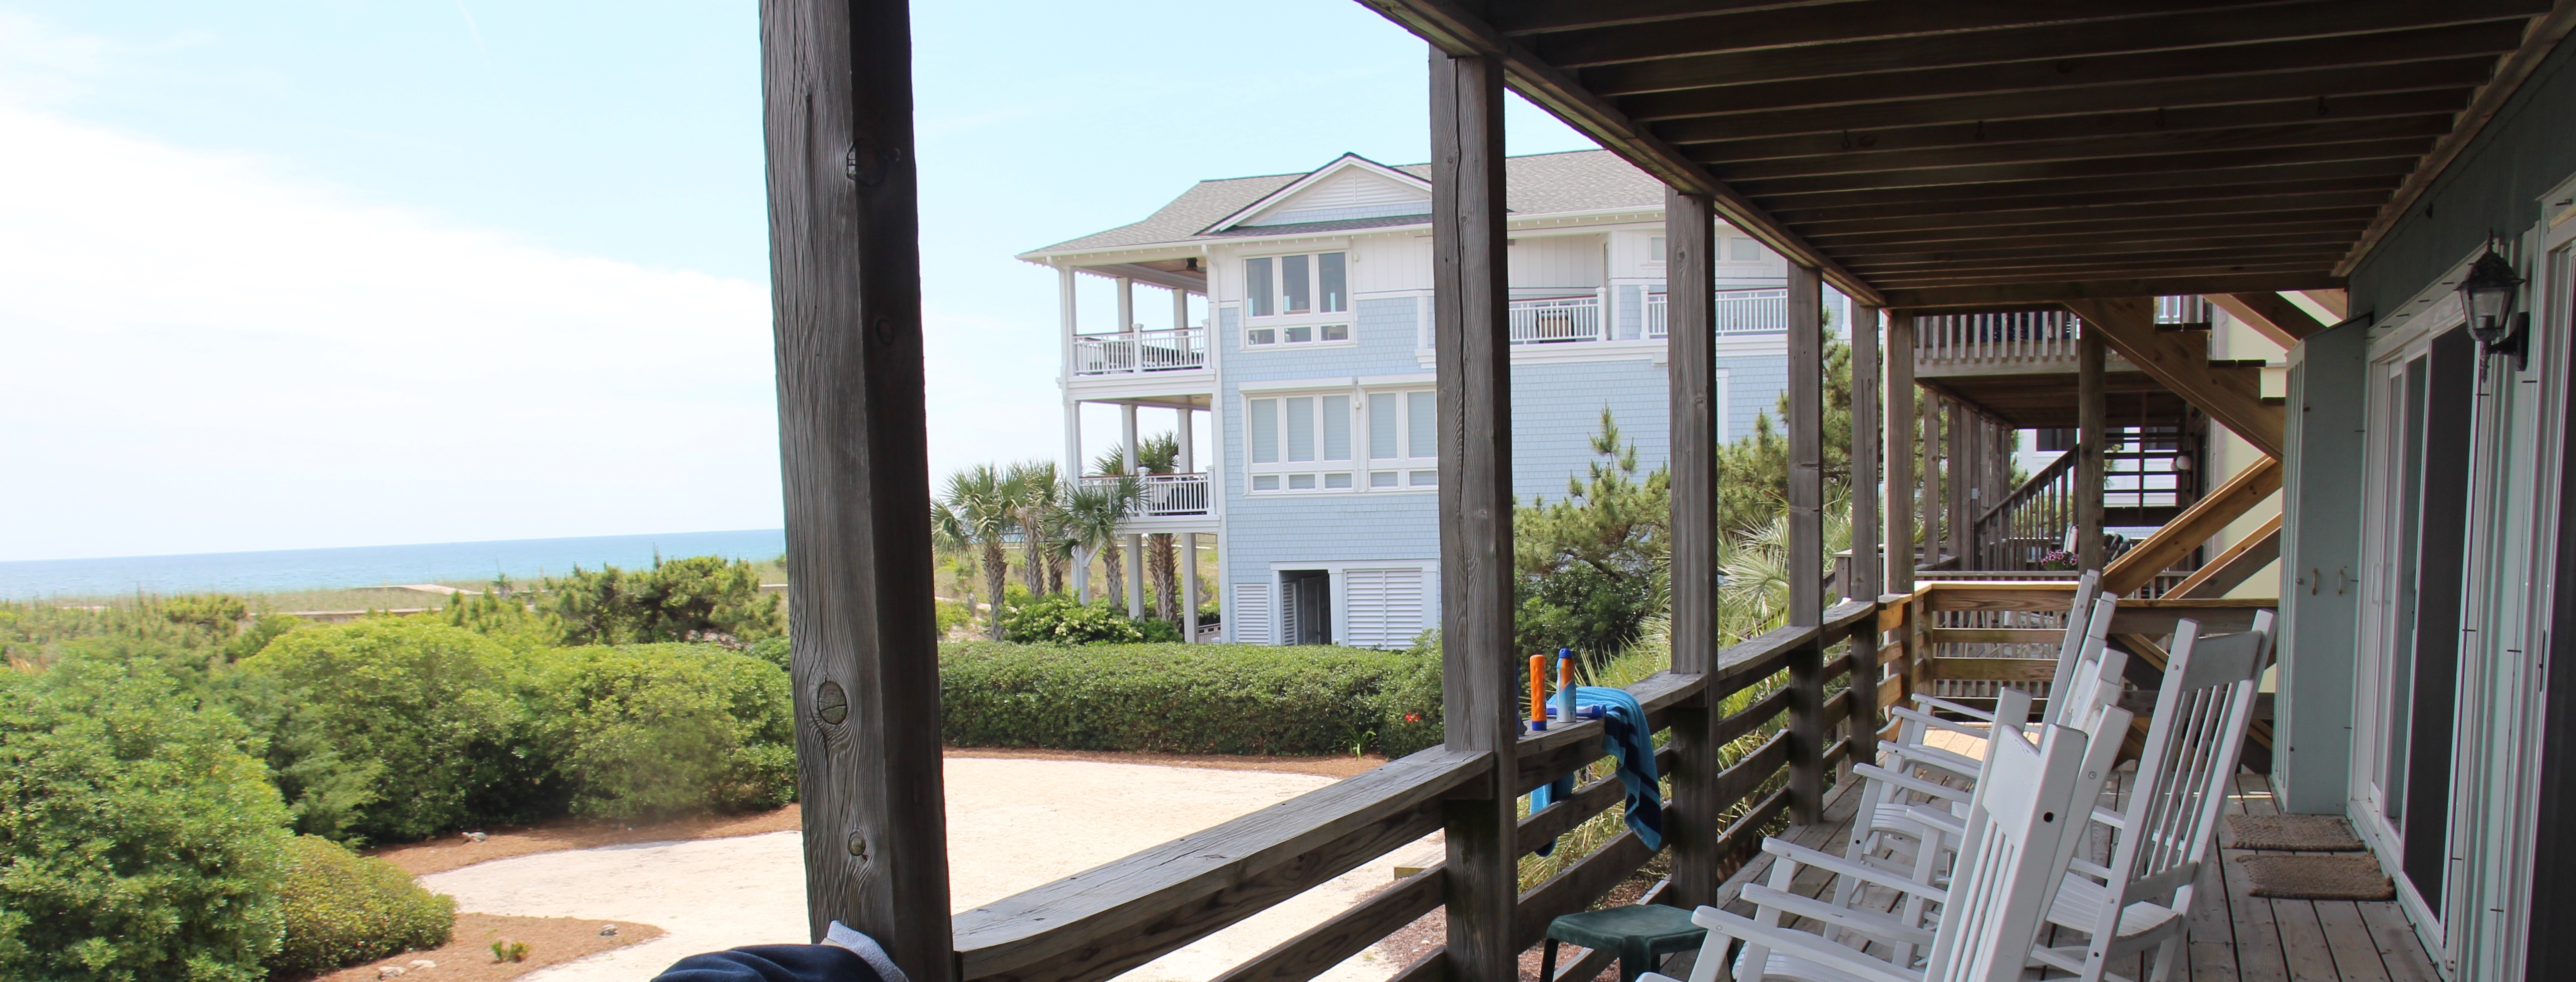 Wrightsville Beach Oceanfront Property For Sale